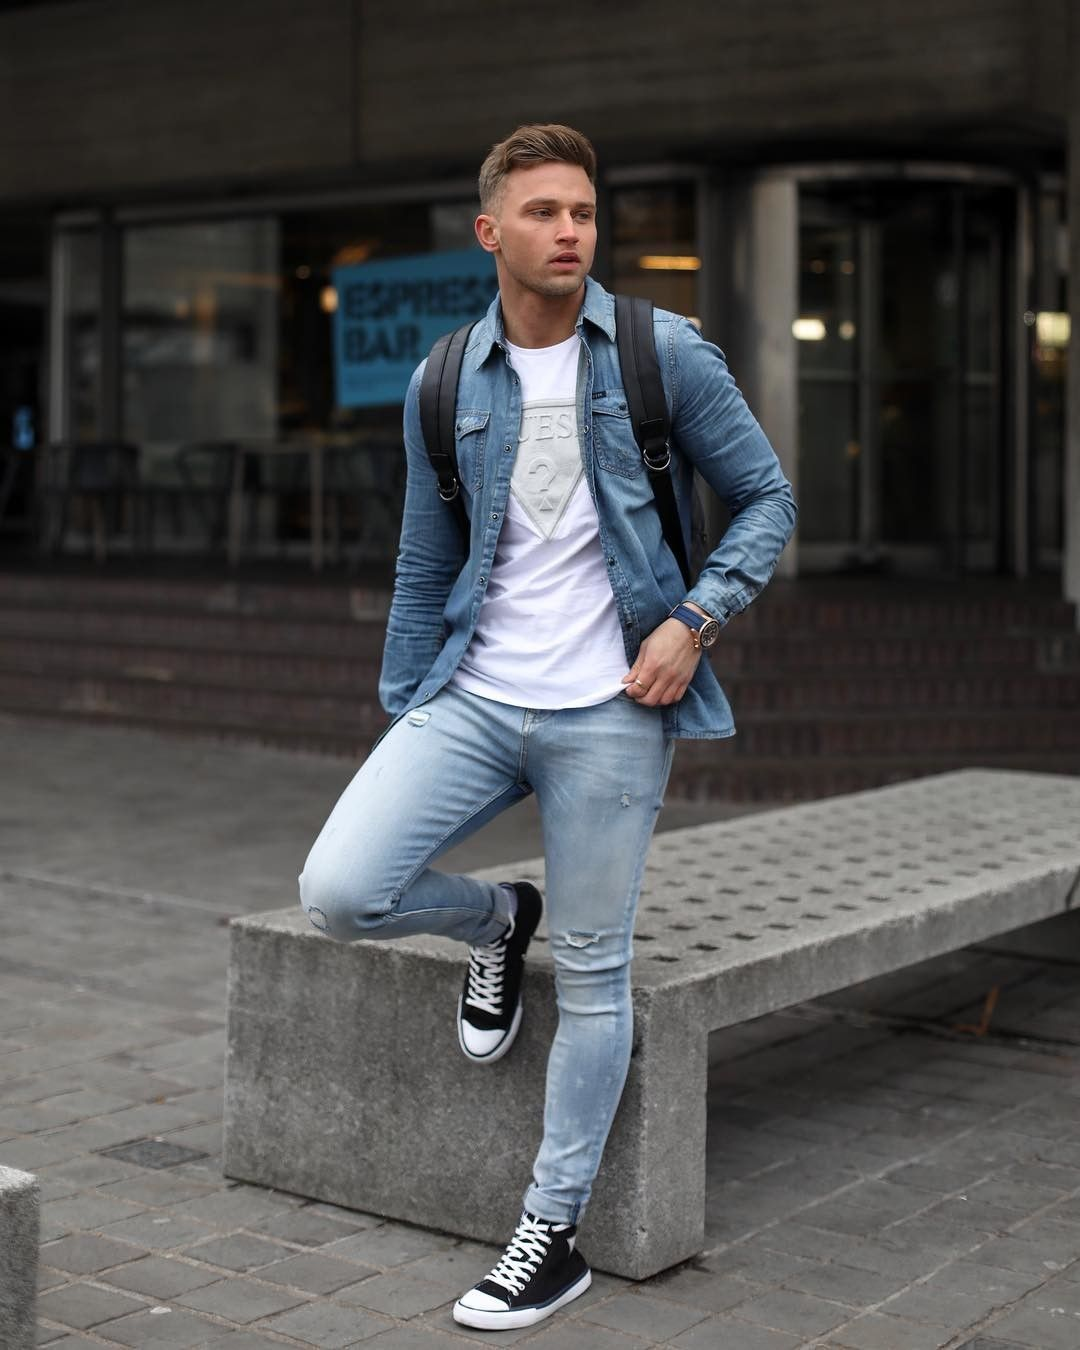 Carl Cunard On Instagram I Guess Its A Double Denim Day